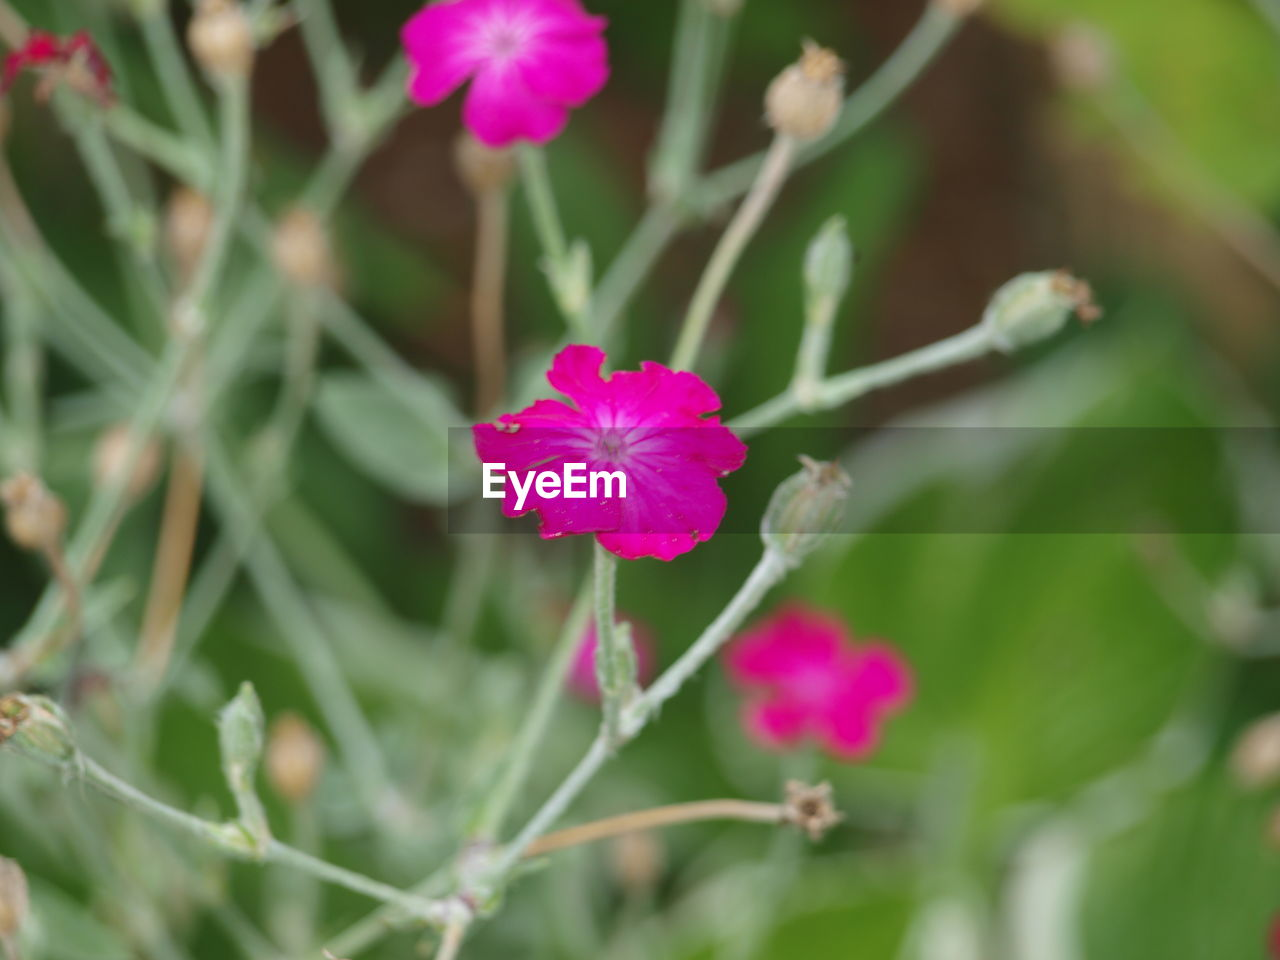 flower, fragility, growth, pink color, nature, petal, flower head, day, beauty in nature, blooming, freshness, plant, outdoors, no people, green color, focus on foreground, close-up, periwinkle